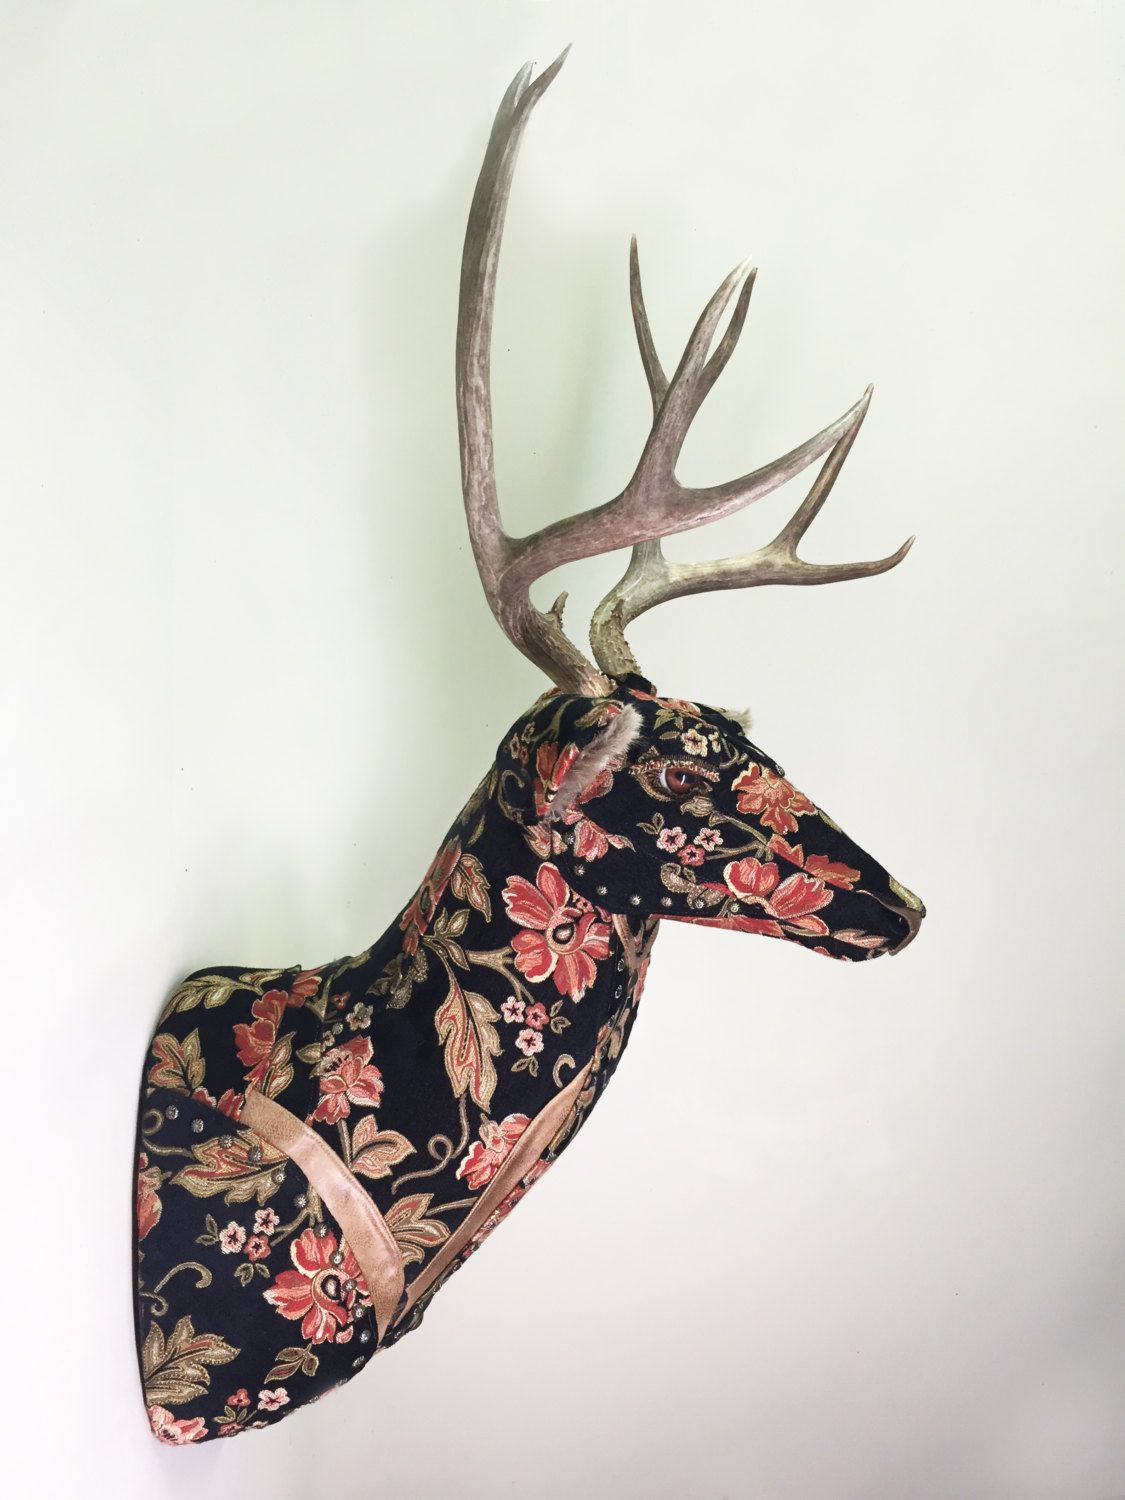 Aubrey Rose Mount Upholstered Faux Taxidermy Deer Head Black Red Pink Green Floral Fabric Real Antlers Animal Head Wall Mount Animal Heads Antler Crafts